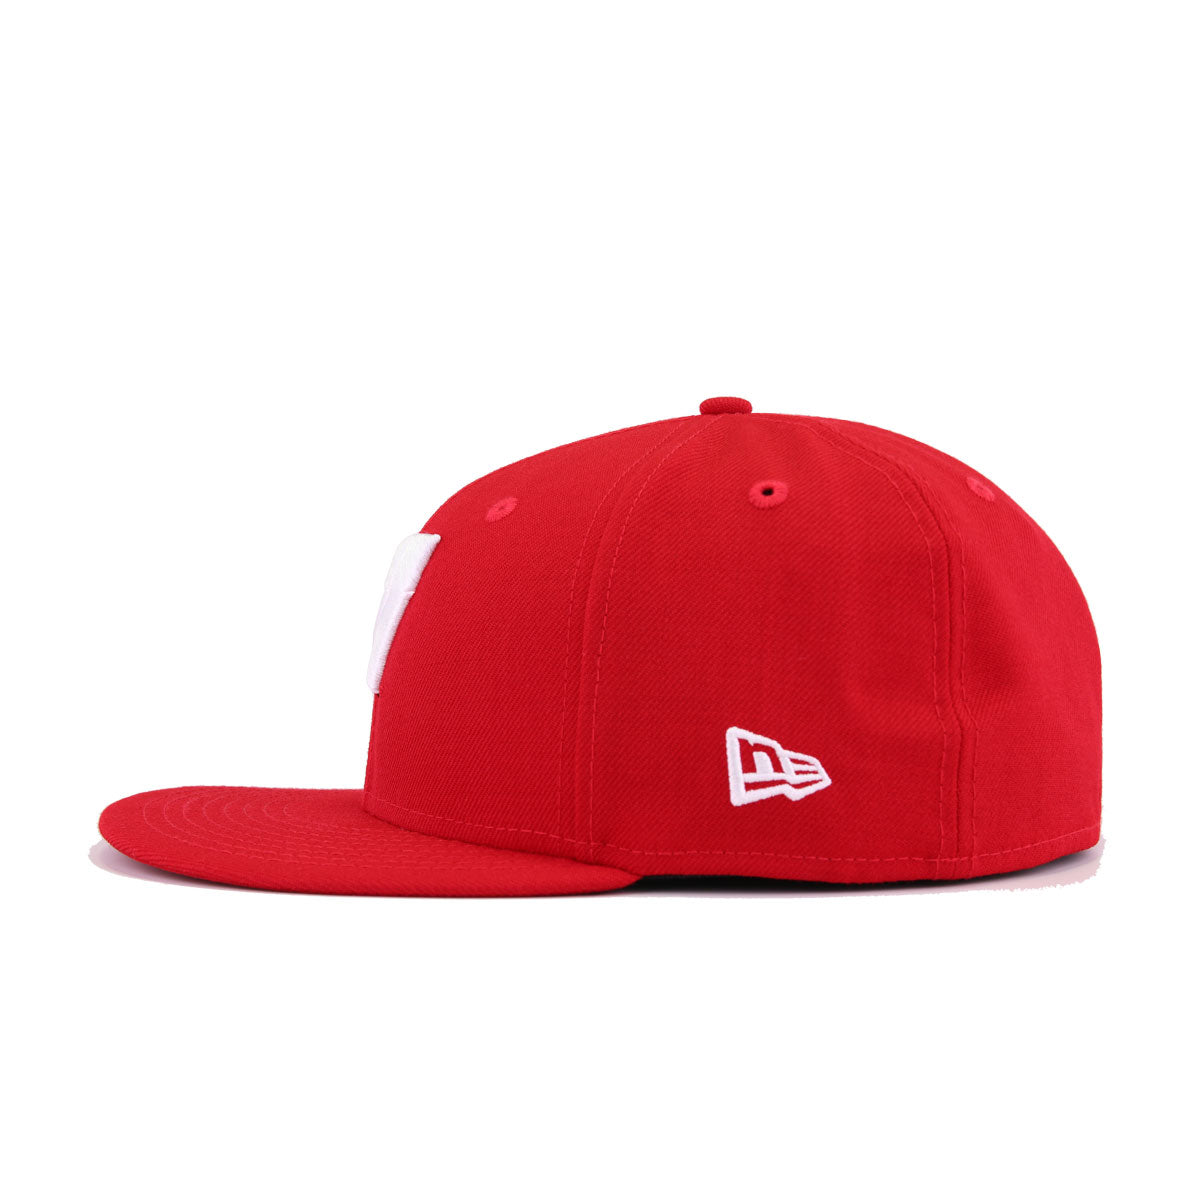 University of Wisconsin Badgers Scarlet New Era 59Fifty Fitted